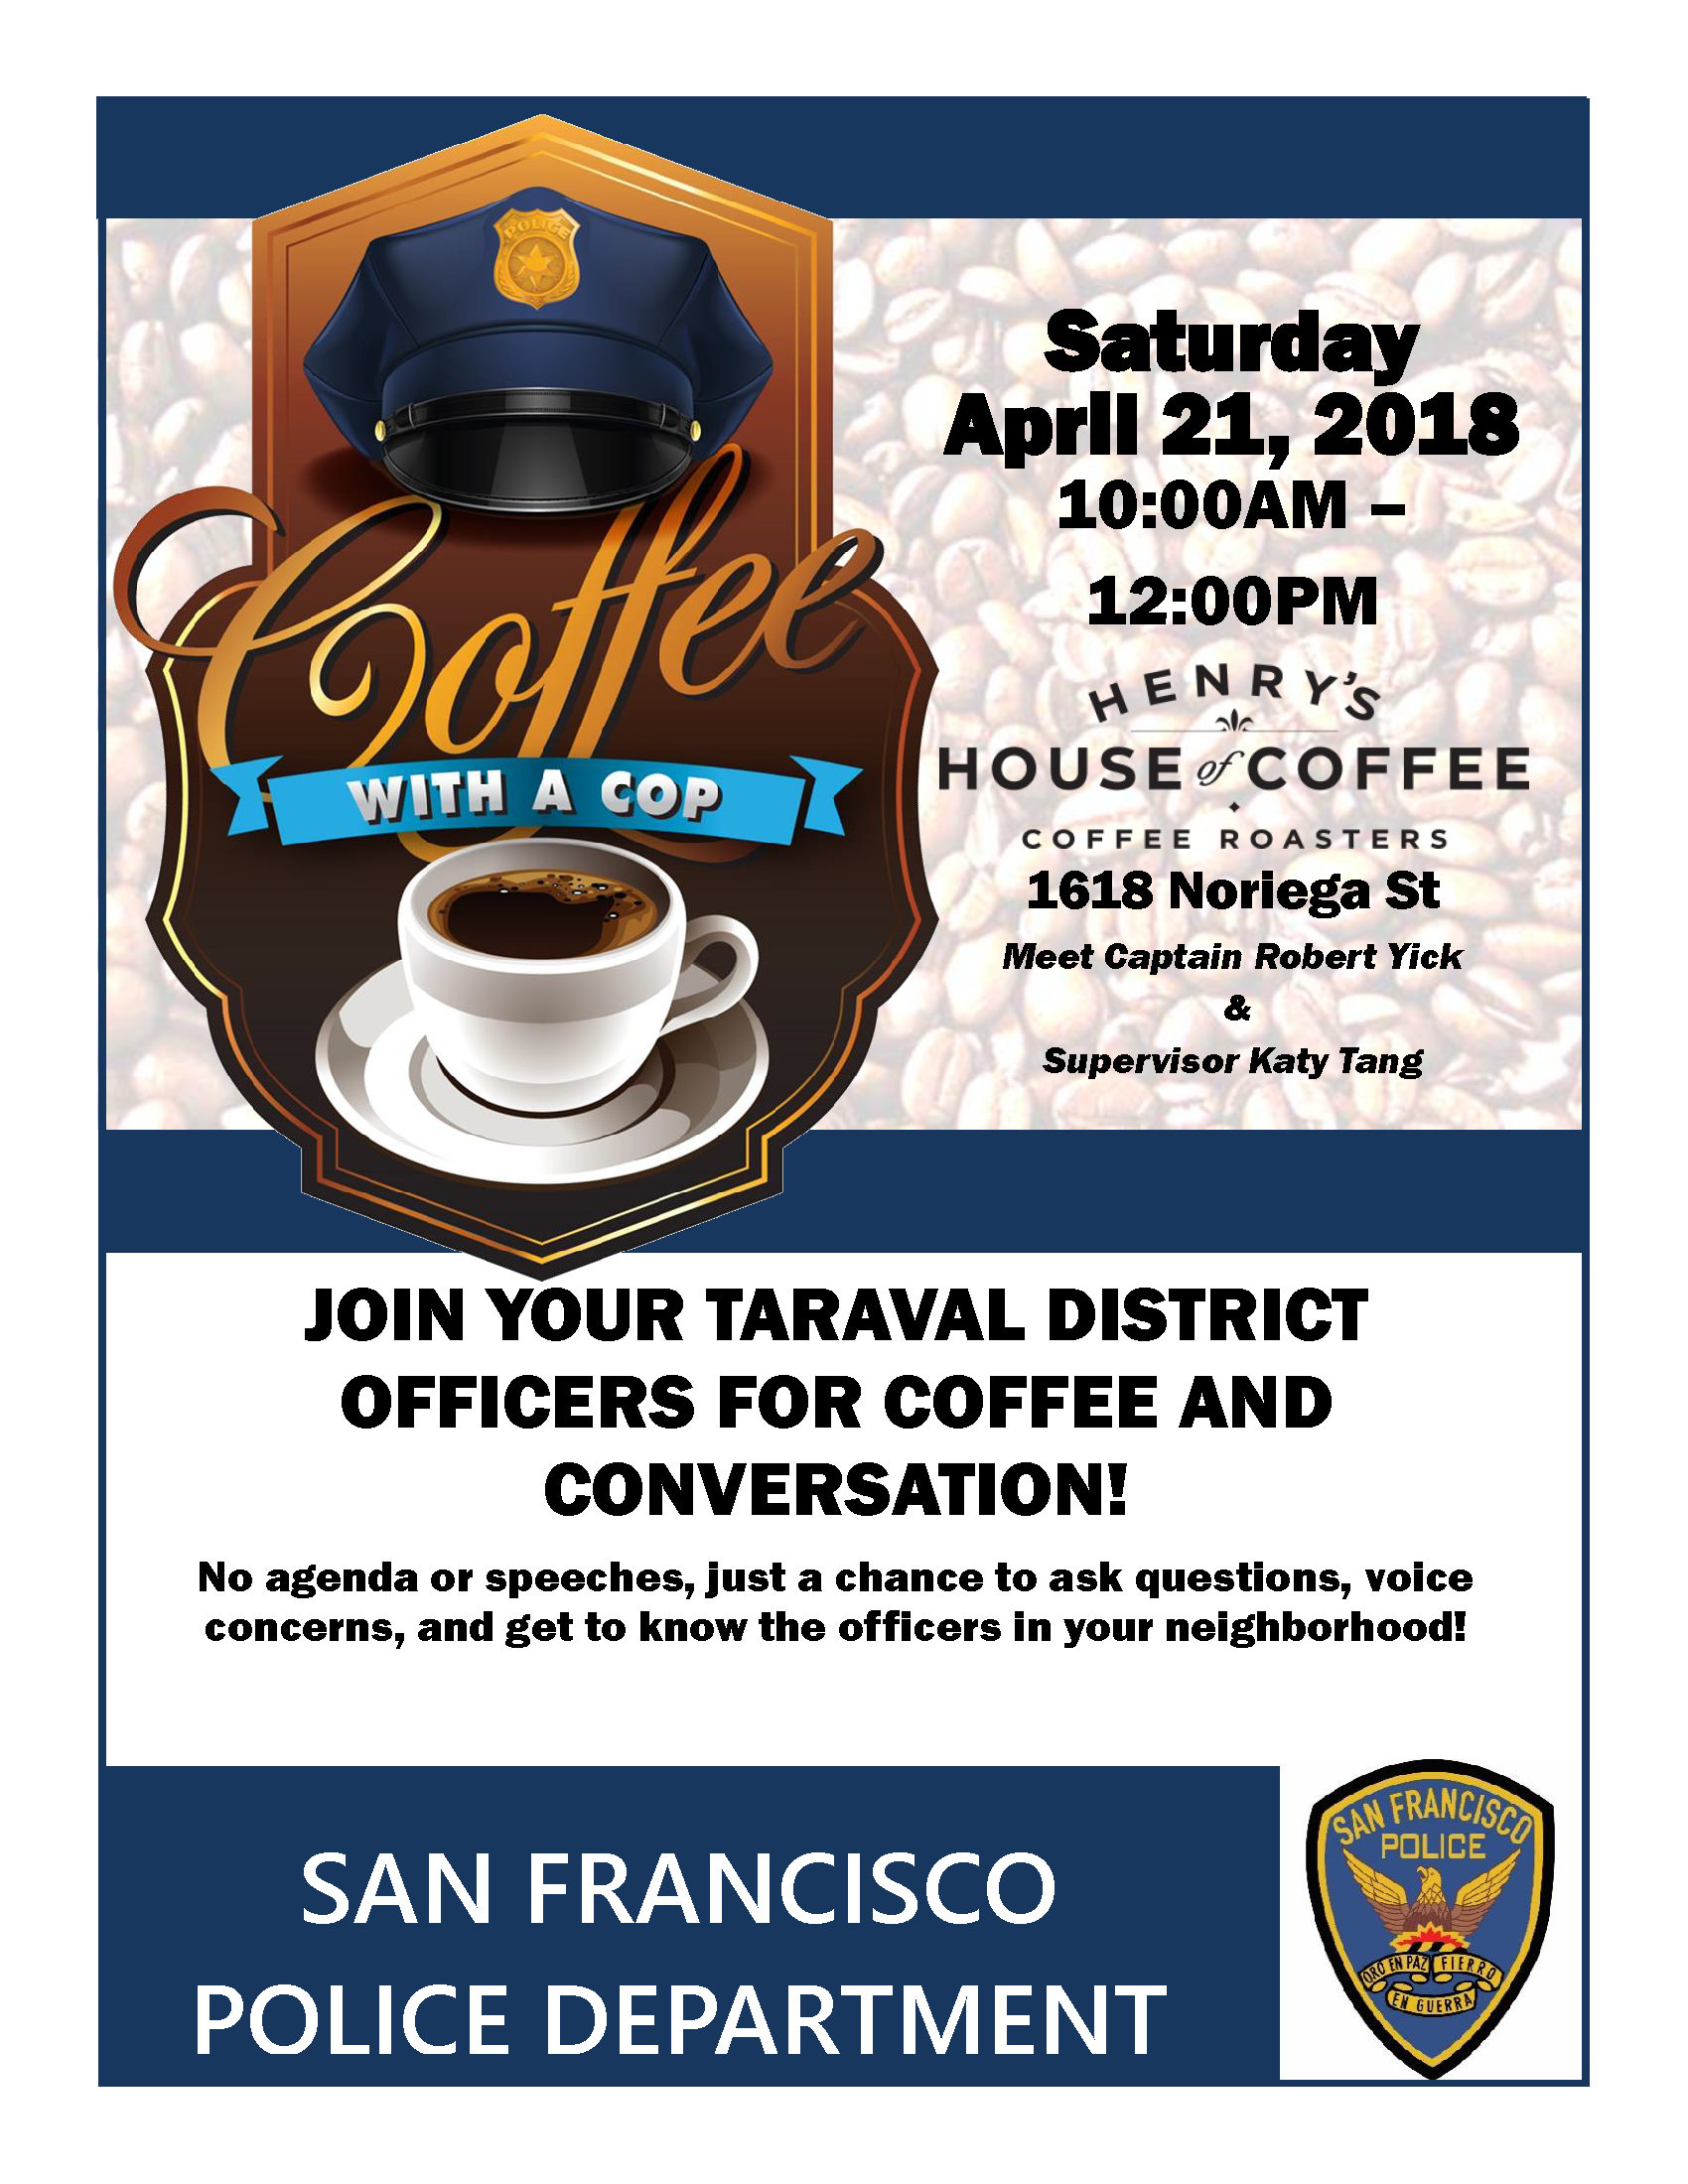 Coffee with a cop flyer Henry House of Coffee